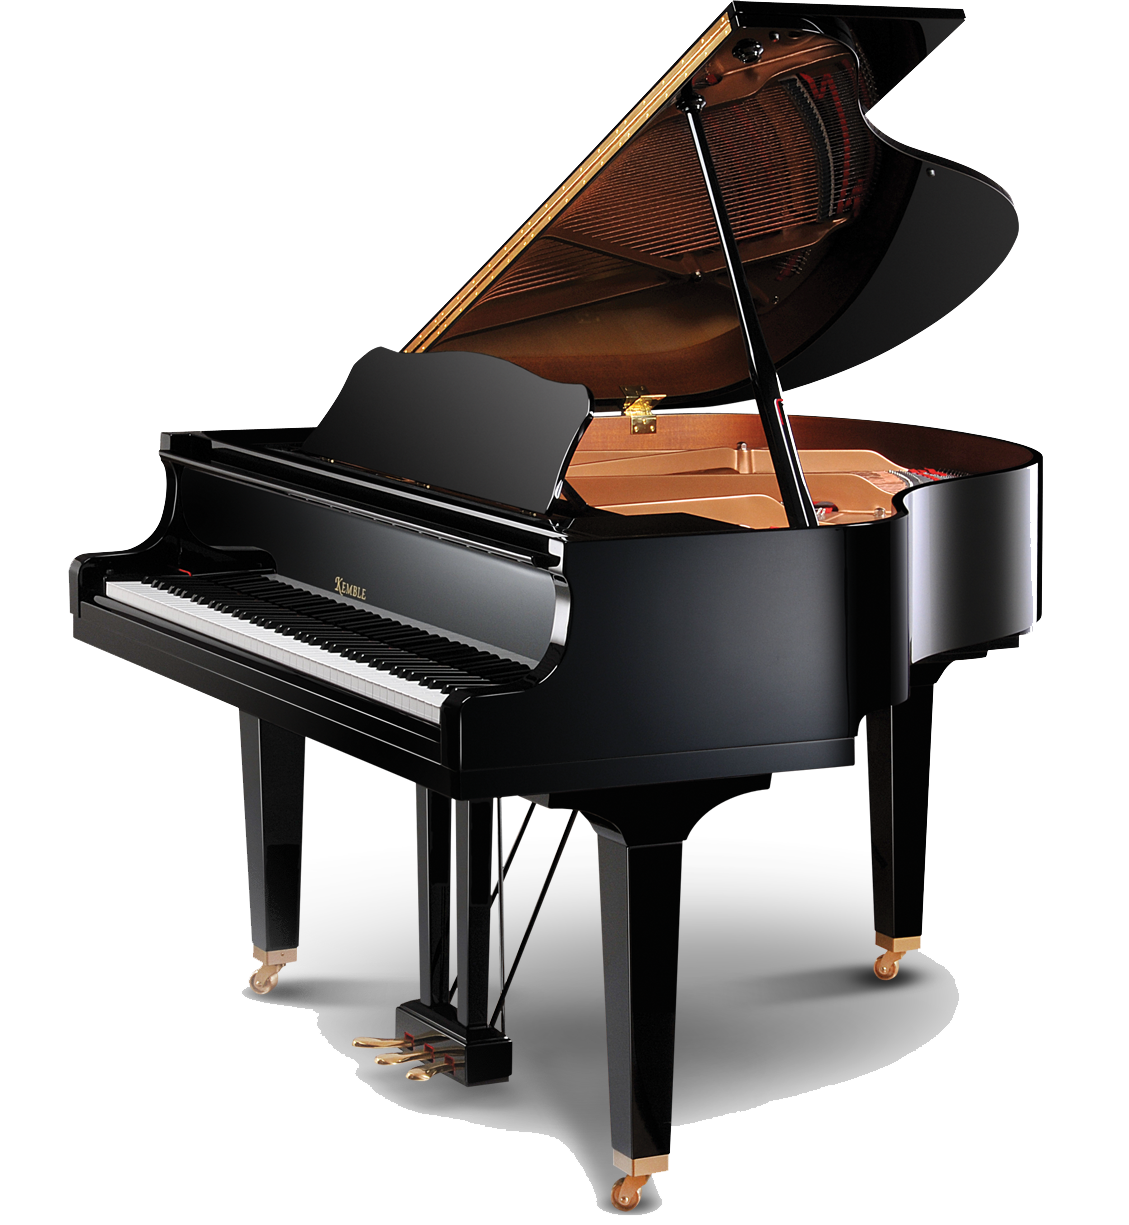 Download Piano Png Clipart Hq Png Image In Different Resolution Freepngimg